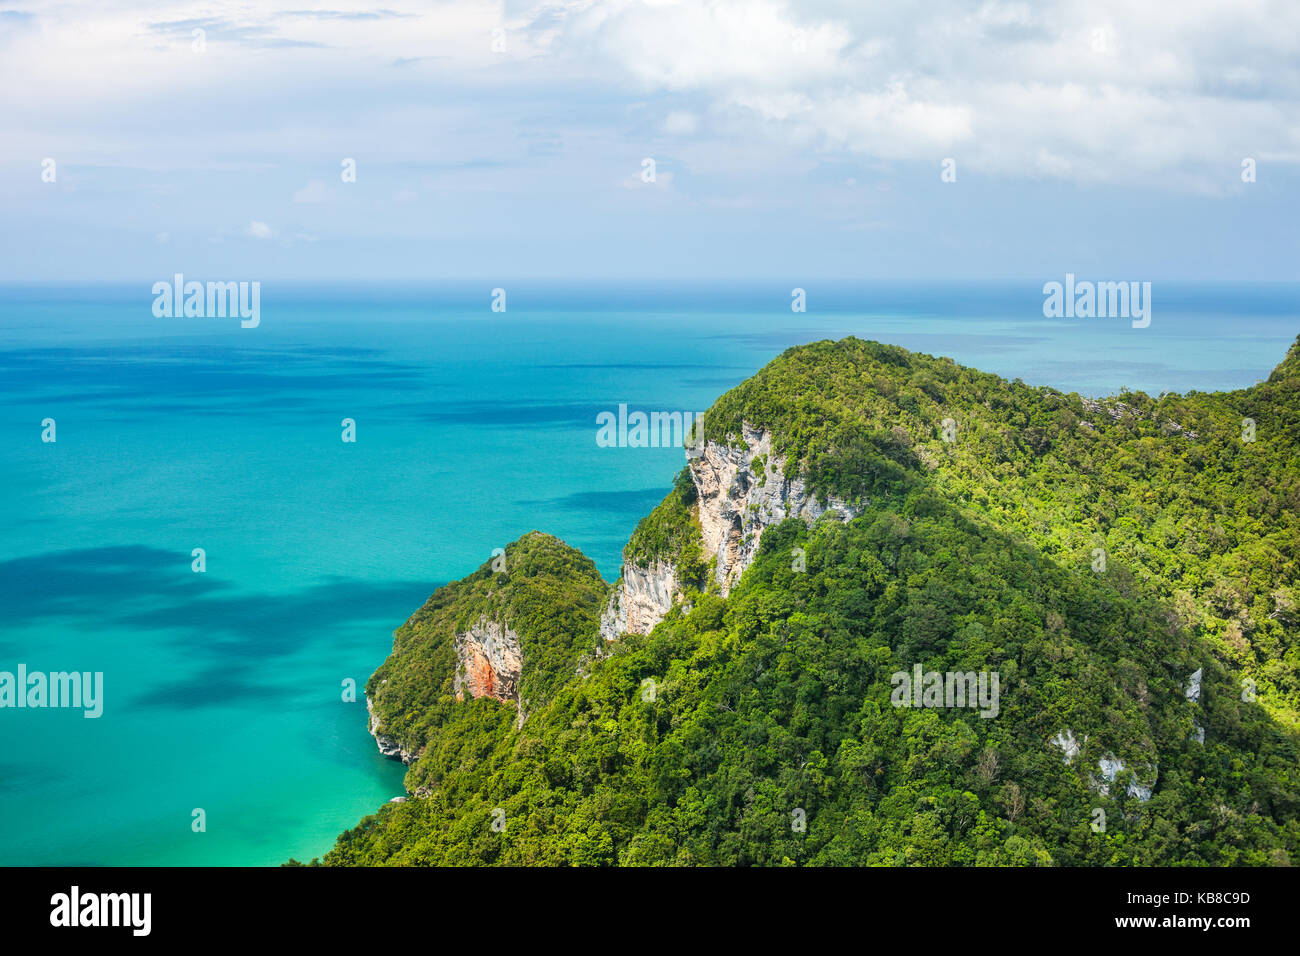 Beautiful tropical sea and mountain. Ang Thong National Marine Park,Thailand. Top view. Nature background. - Stock Image